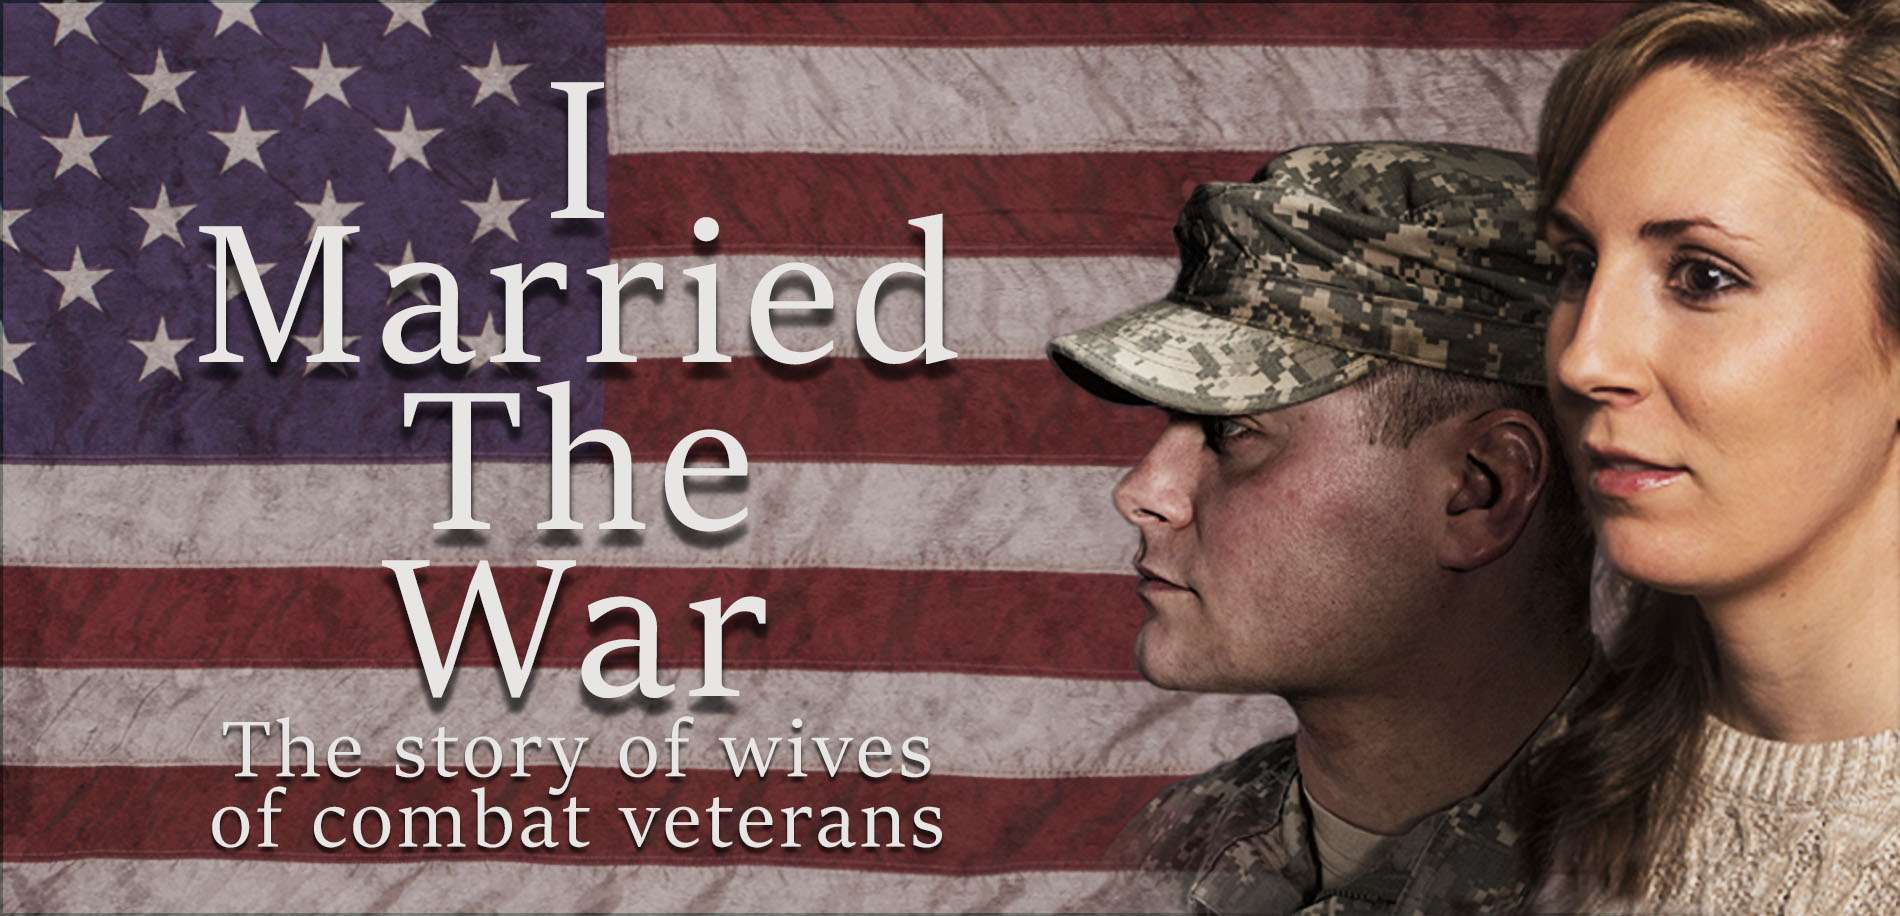 I Married The War web banner